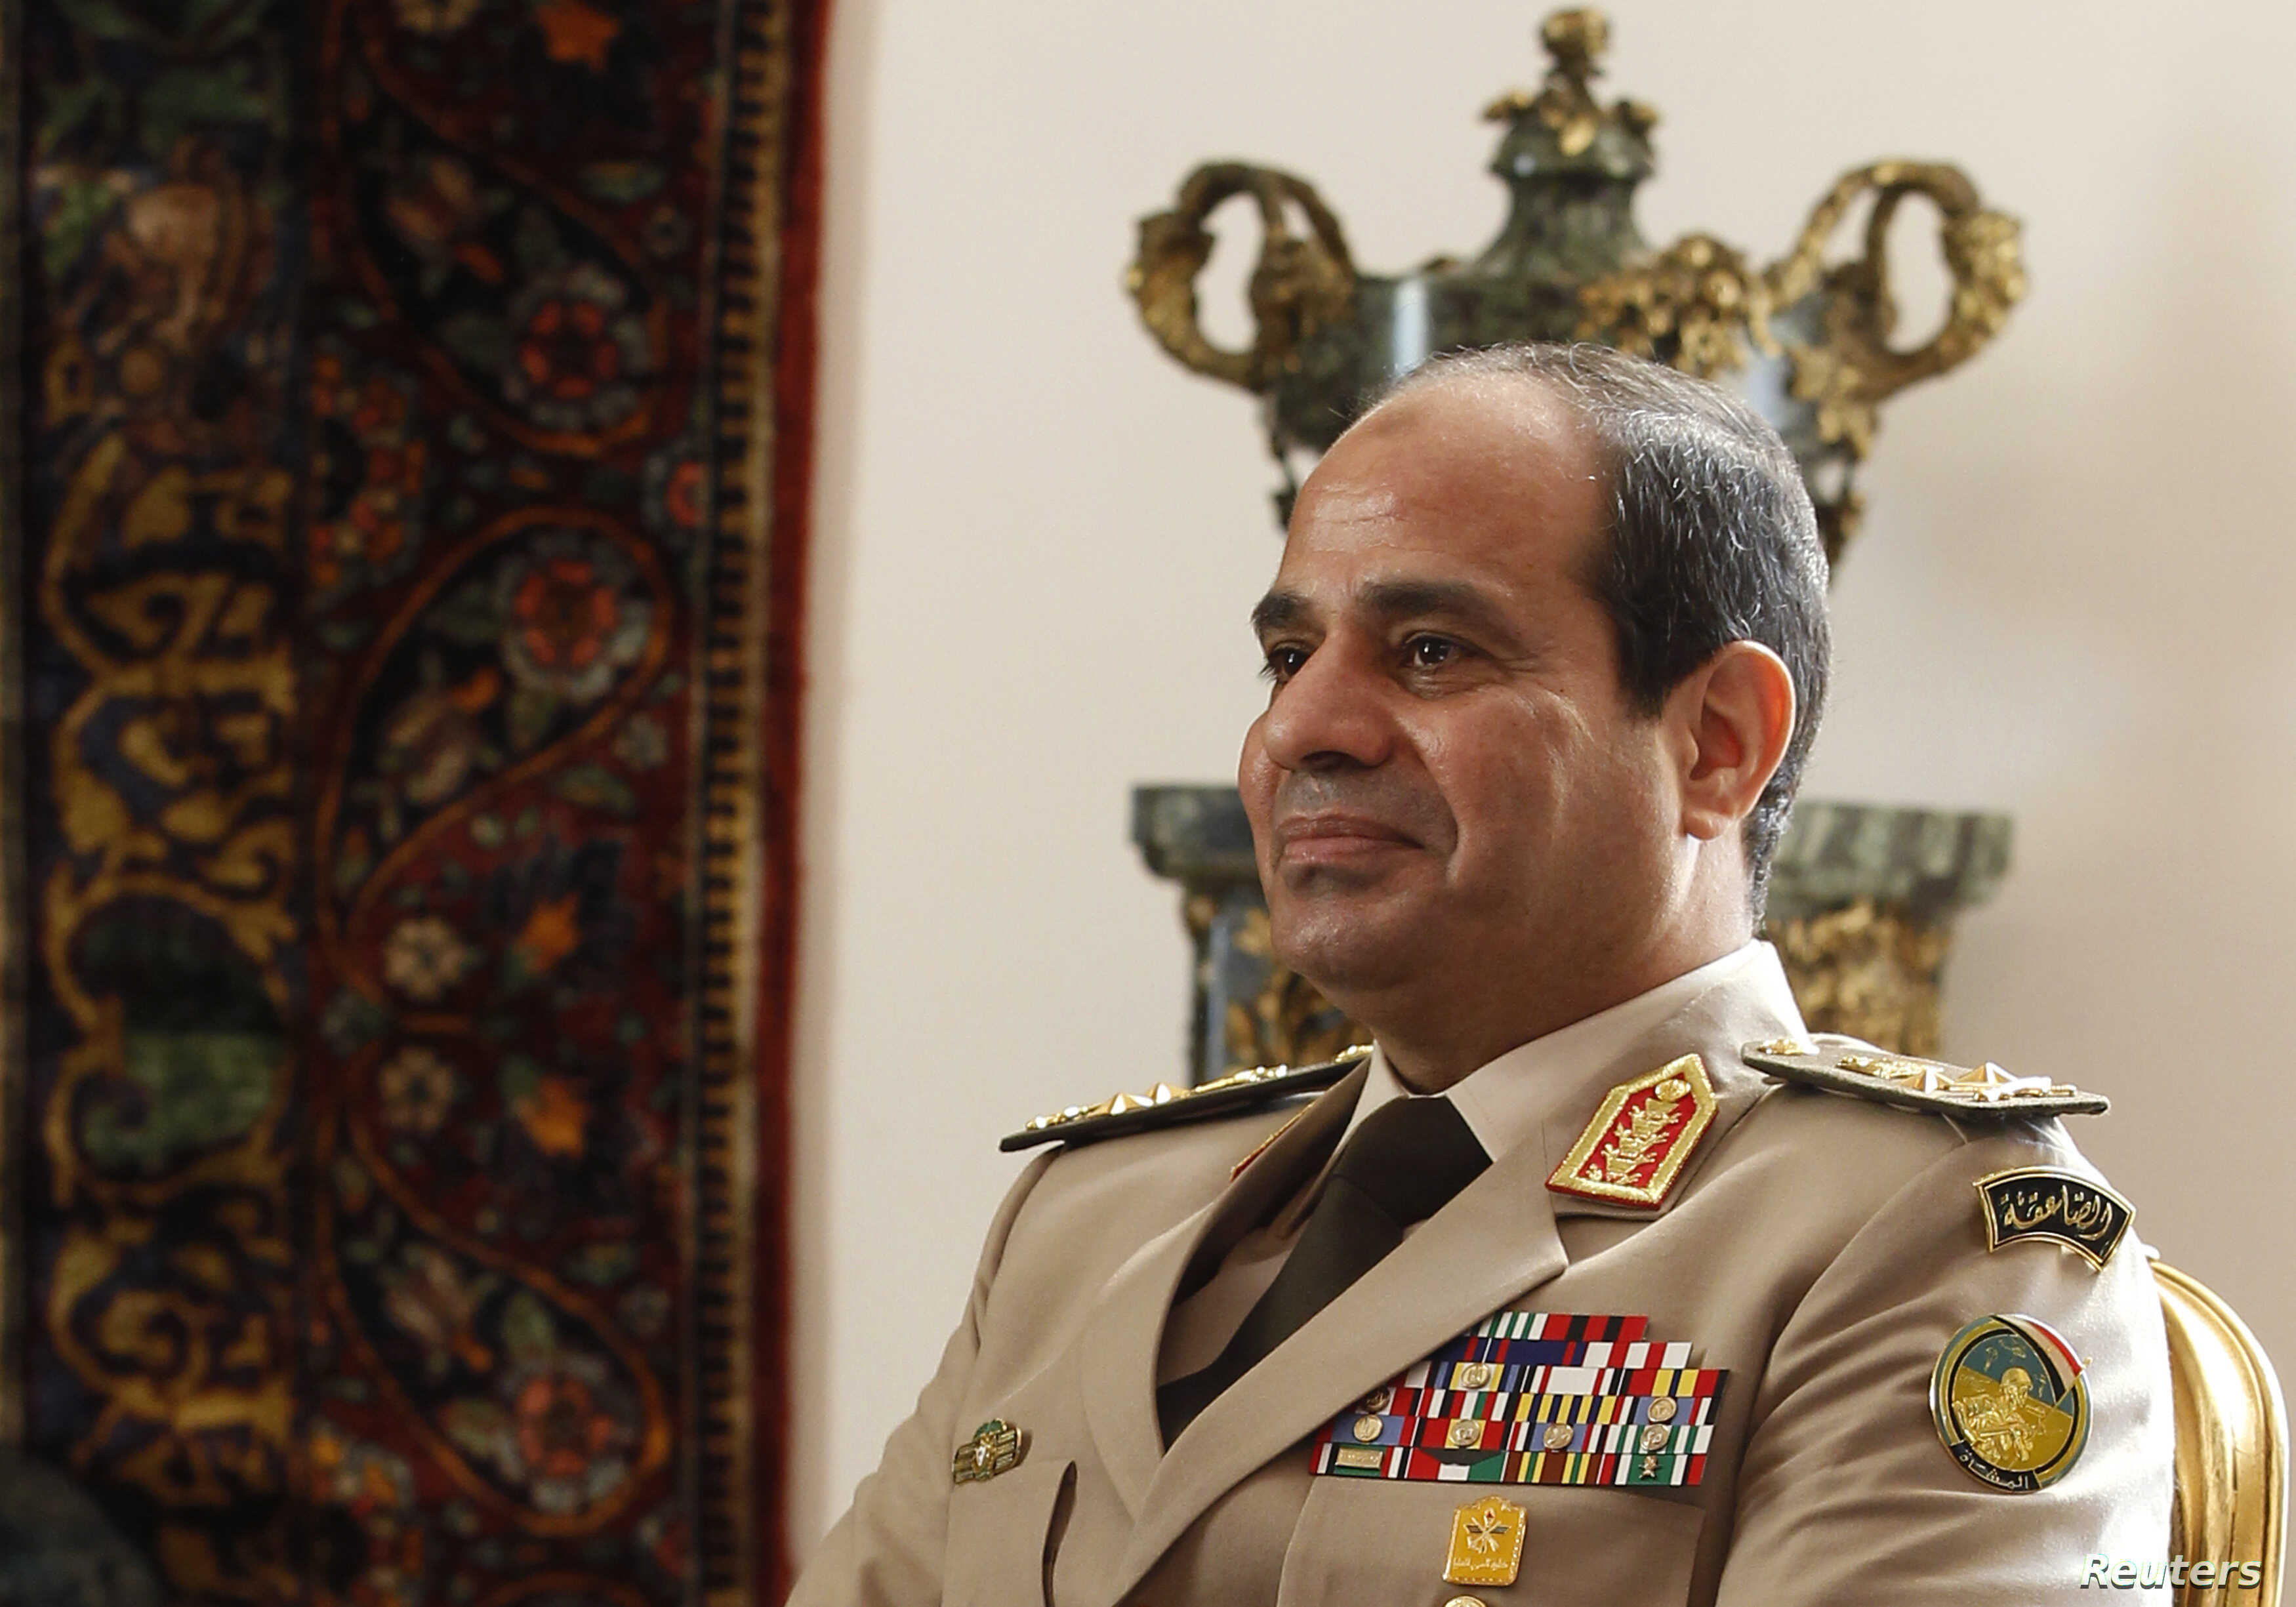 Egypt's Army Chief General Abdel Fattah el-Sissi attends a meeting with Egypt's interim President Adly Mansour, Russia's Defense Minister Sergei Shoigu and Foreign Minister Sergei Lavrov (not pictured) at El-Thadiya presidential palace in Cairo, Nov....